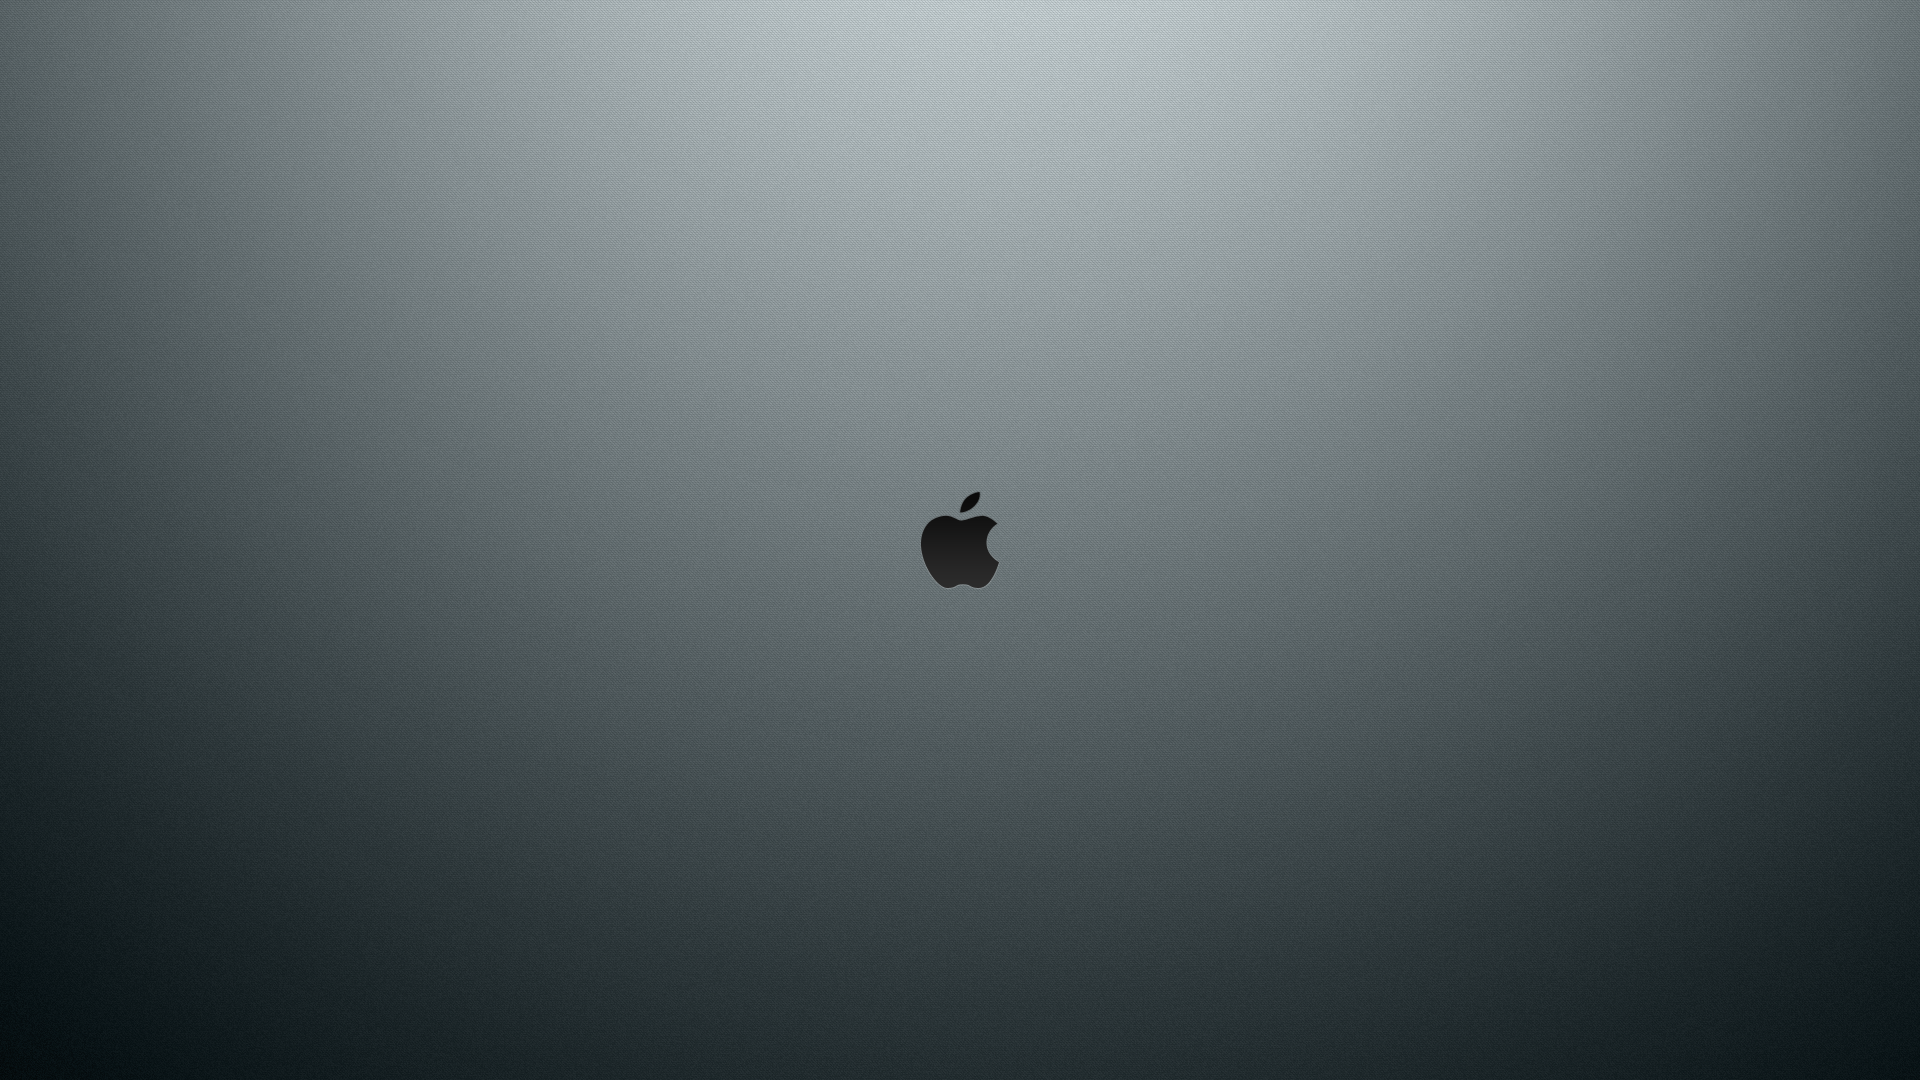 Just-The-Apple-Logo